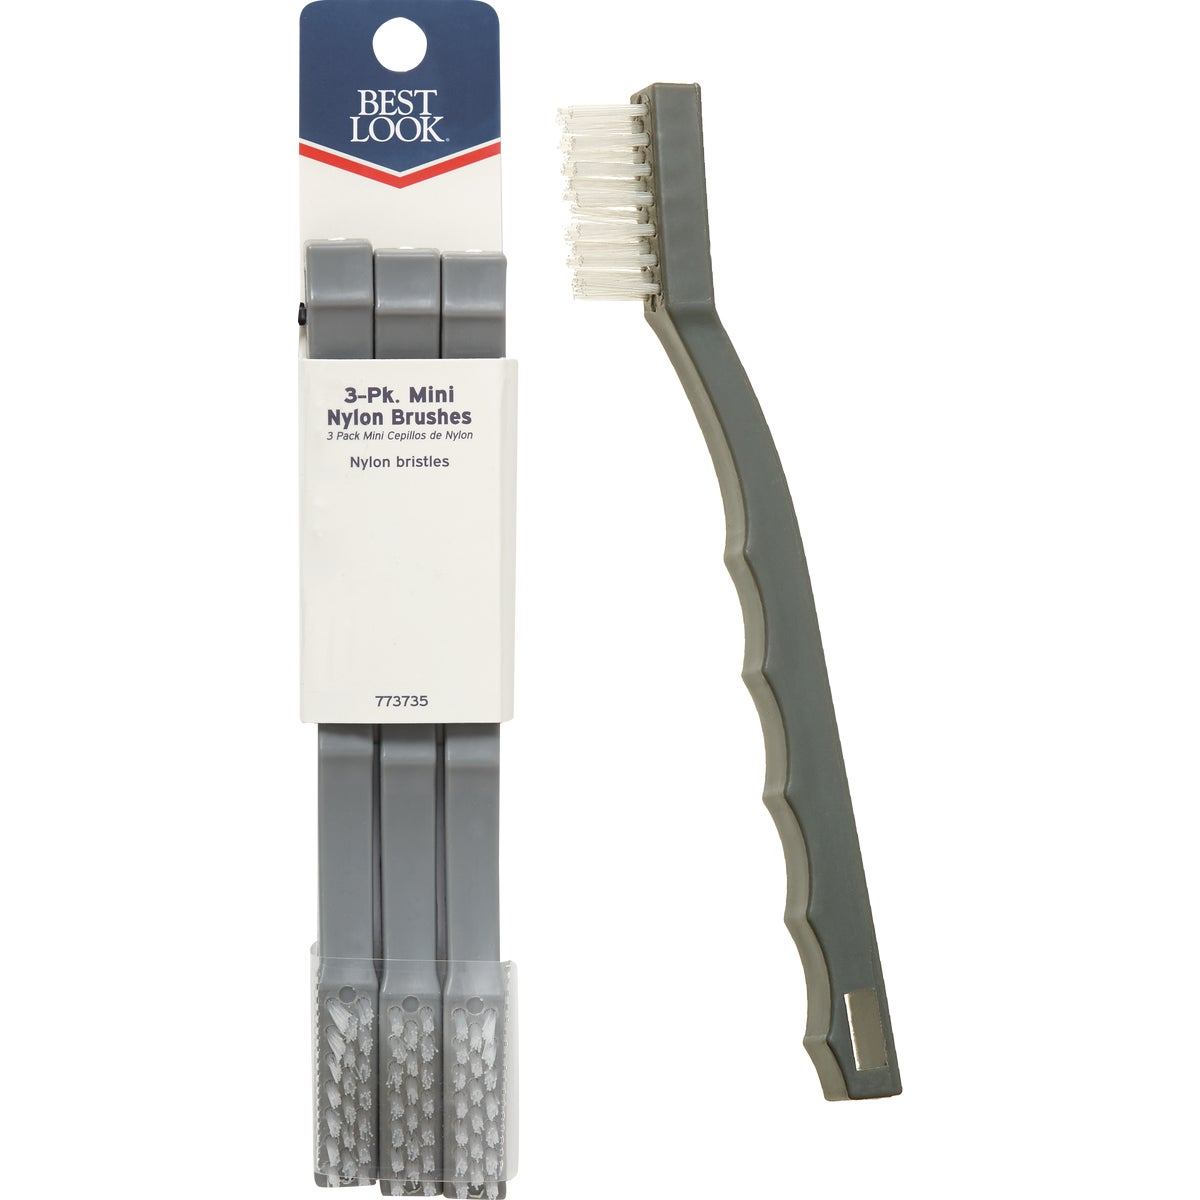 3PK MINI NYLON BRUSH